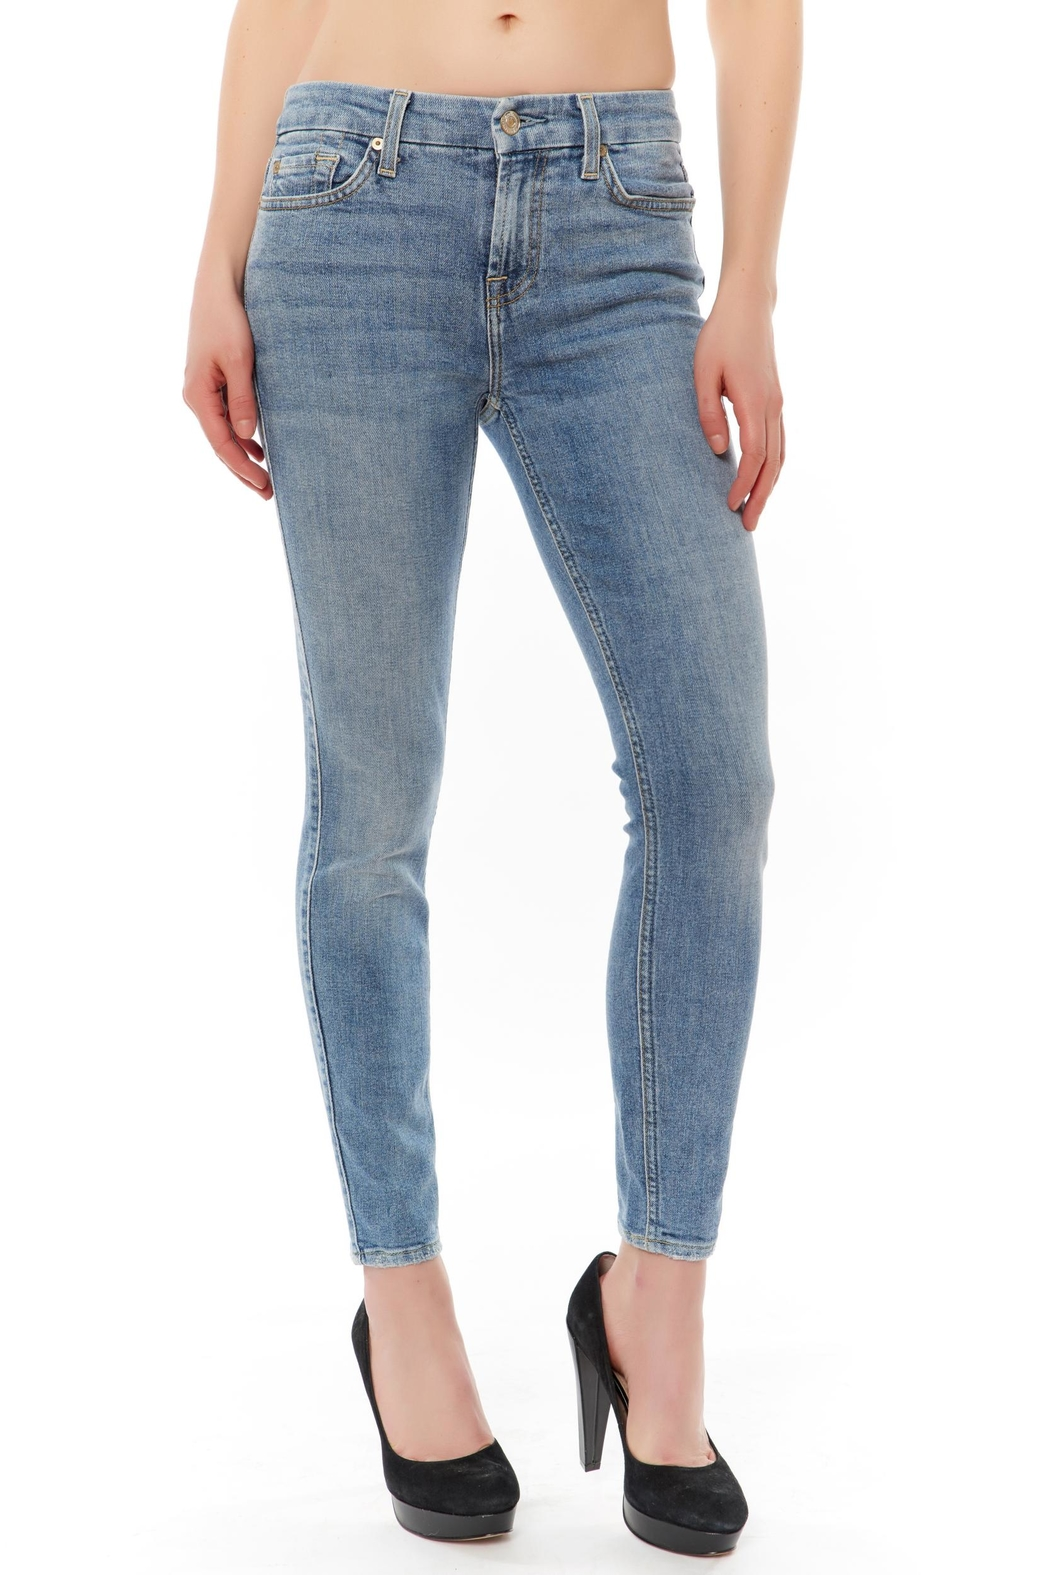 7 For all Mankind Ankle Skinny Jean - Main Image